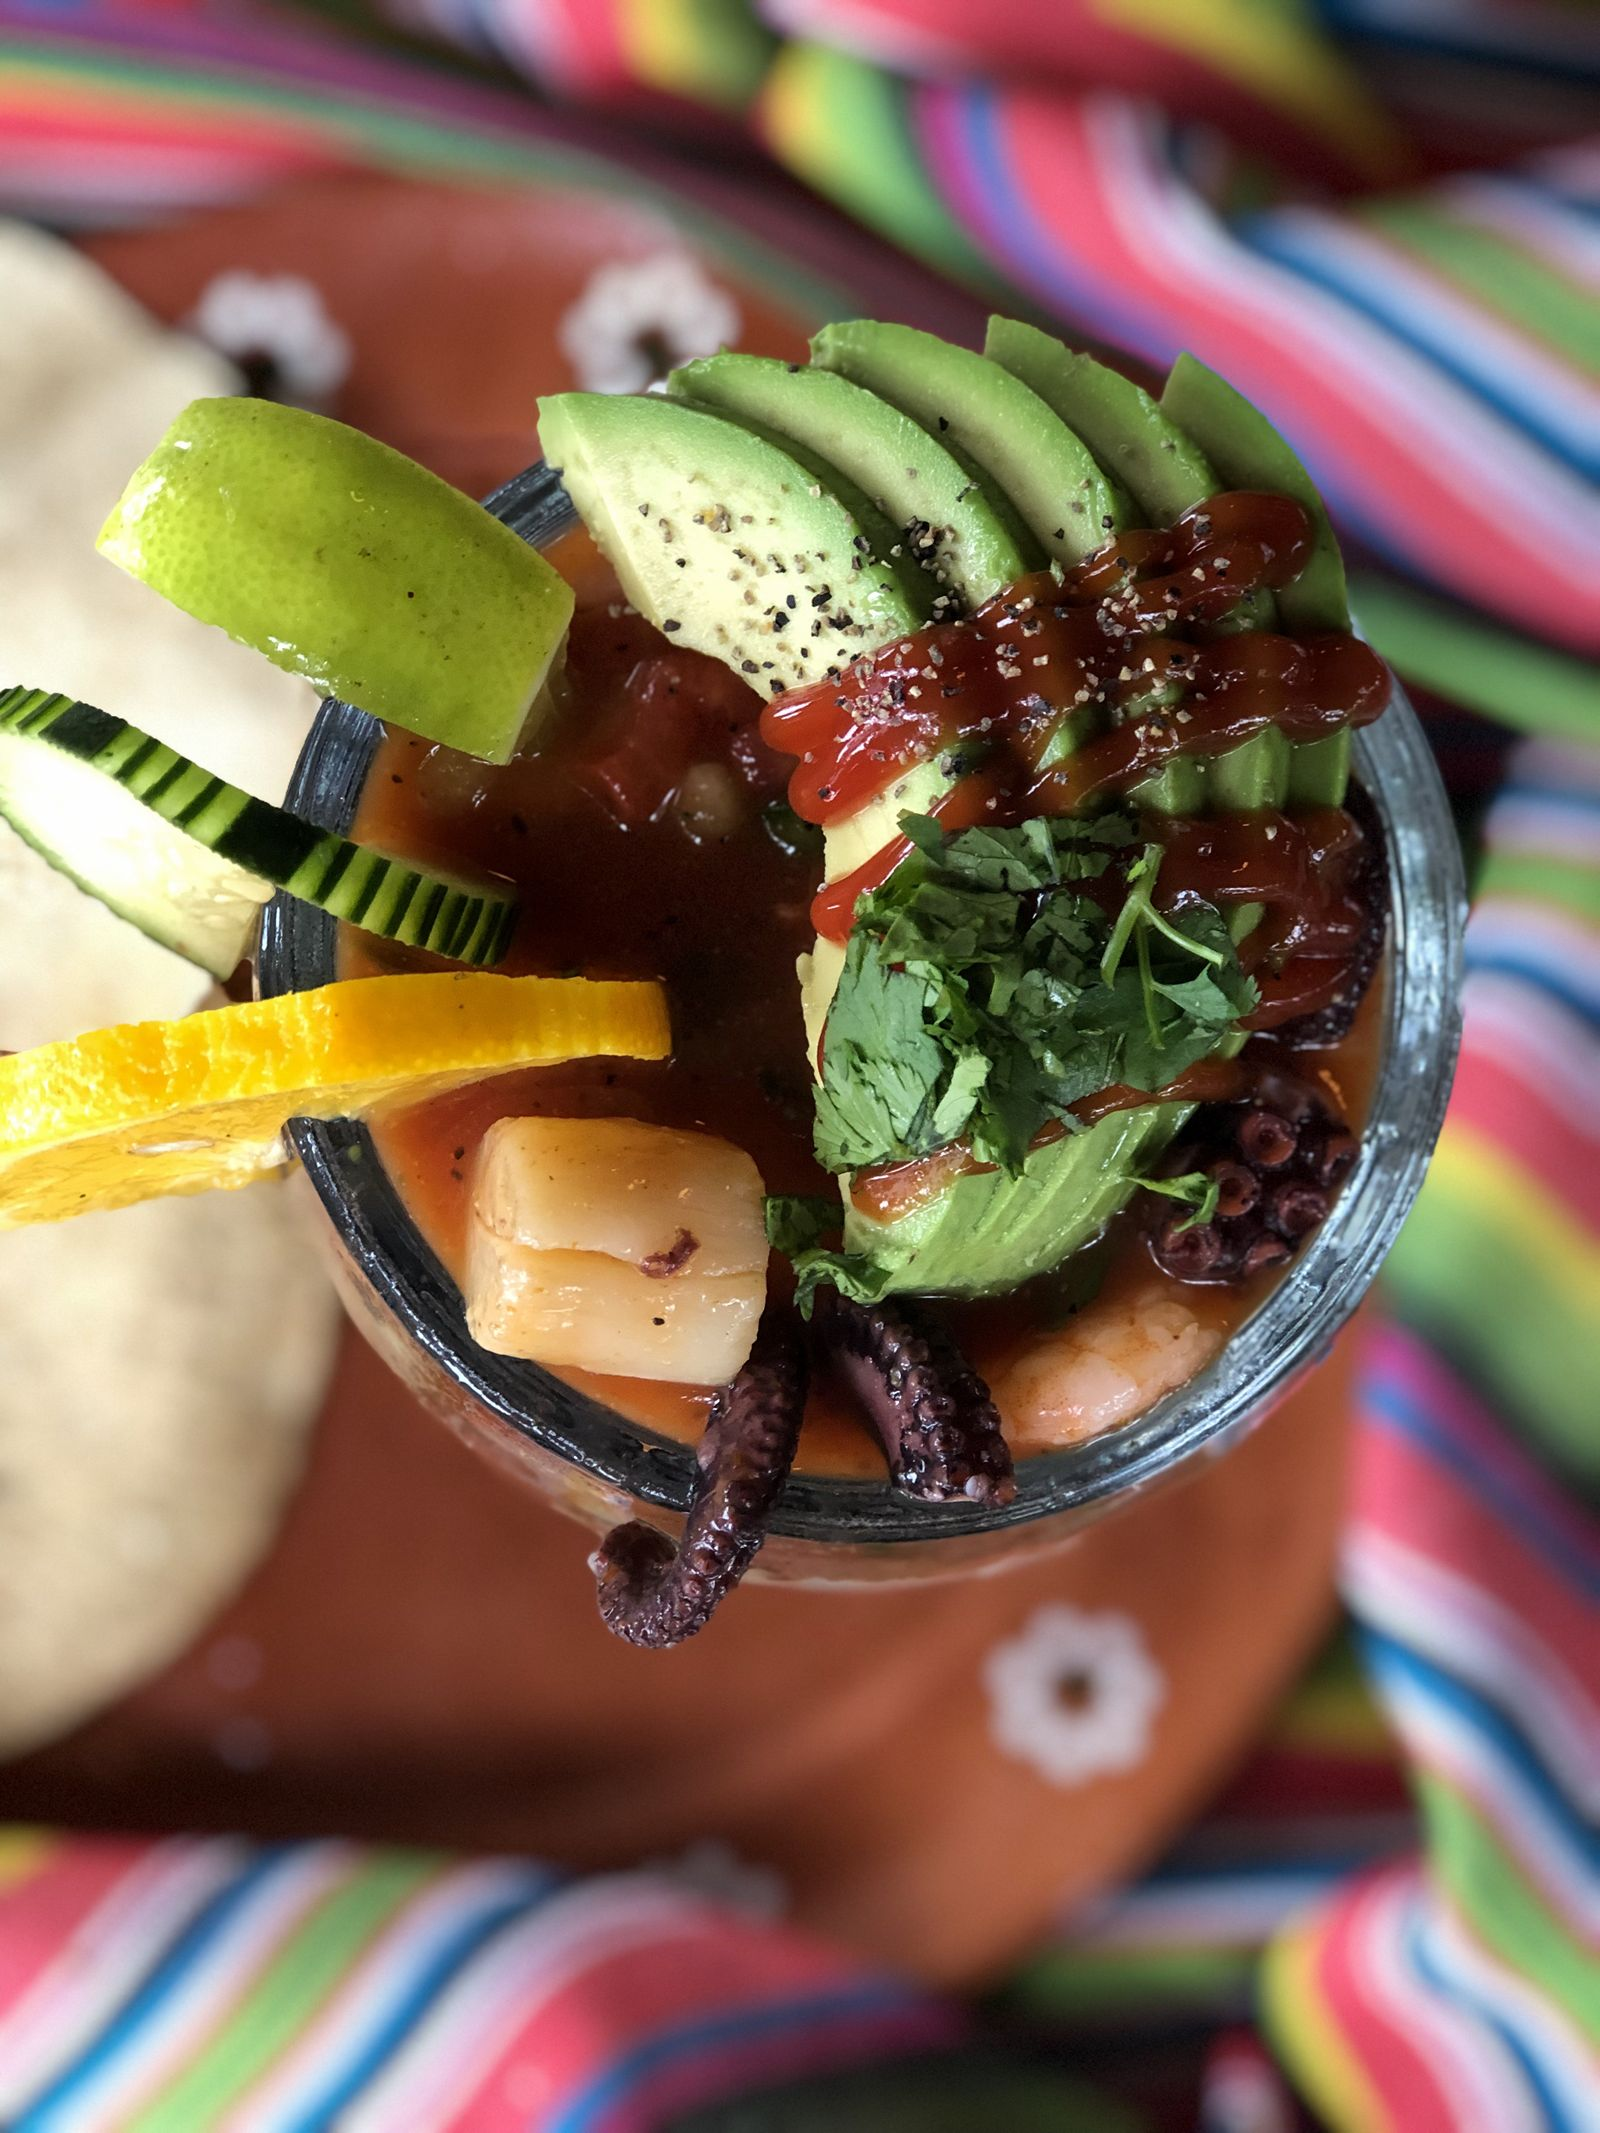 La Marisquera Ostioneria Seafood and Oyster Bar's 2nd Location Opens in Houston